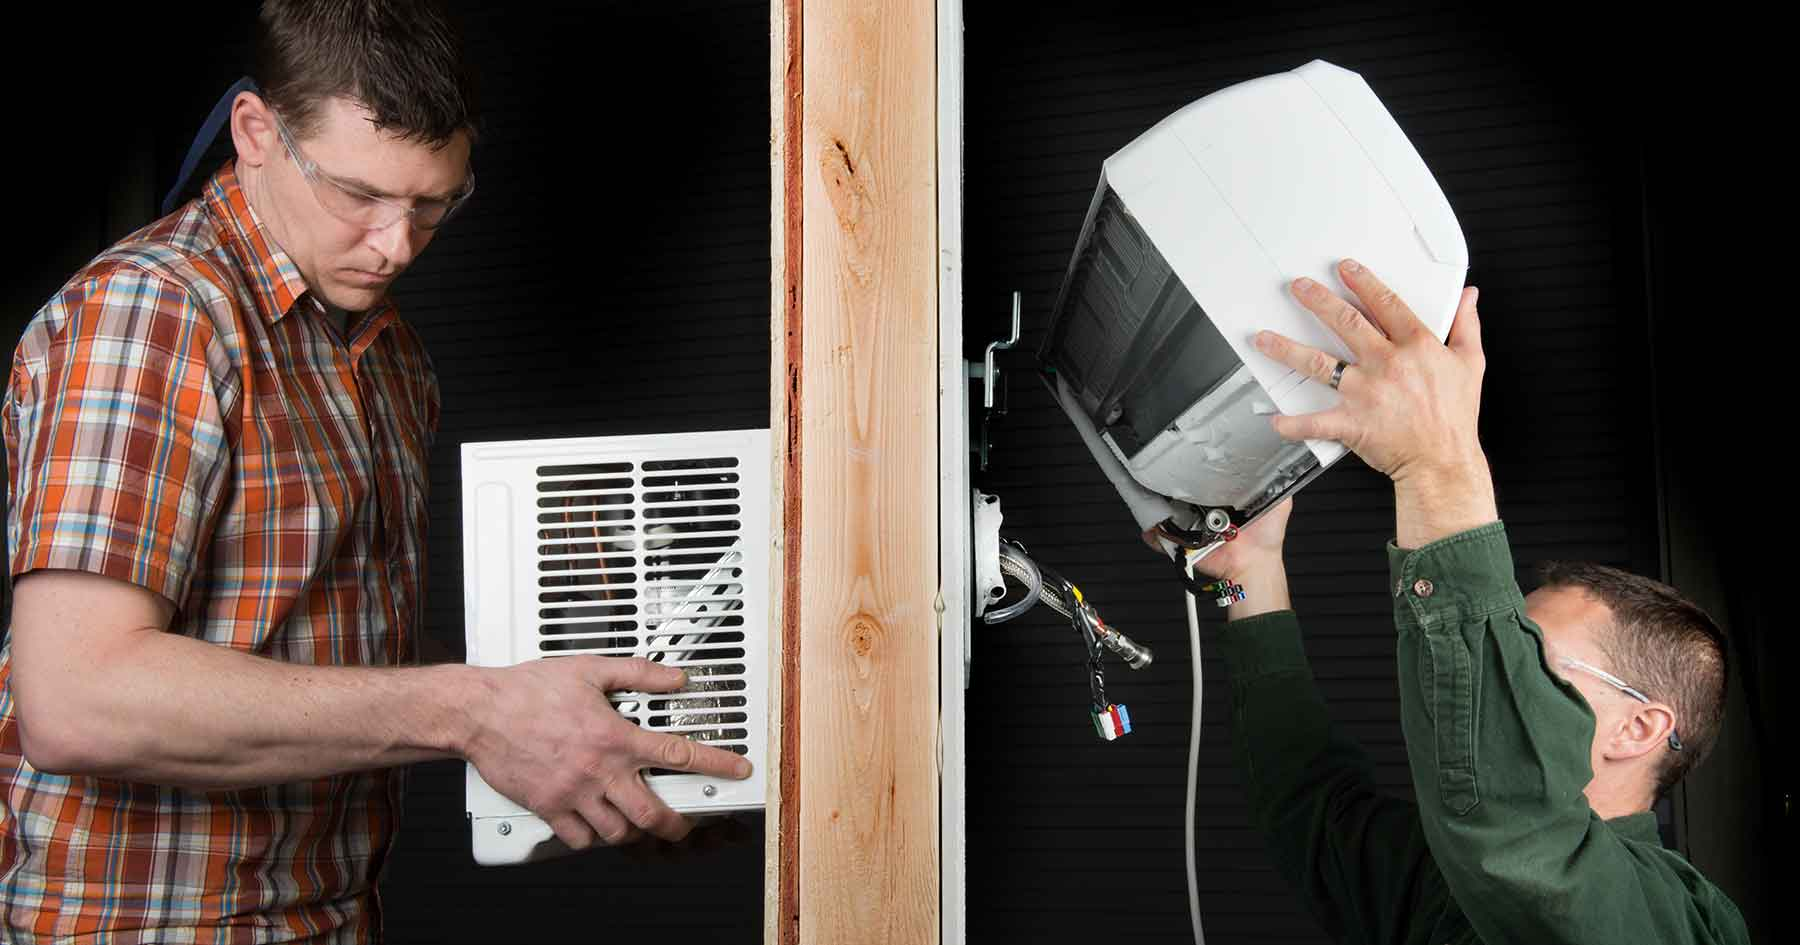 Two men shown on opposite sides of a wall installing the EcoSnap-AC Heat Pump System